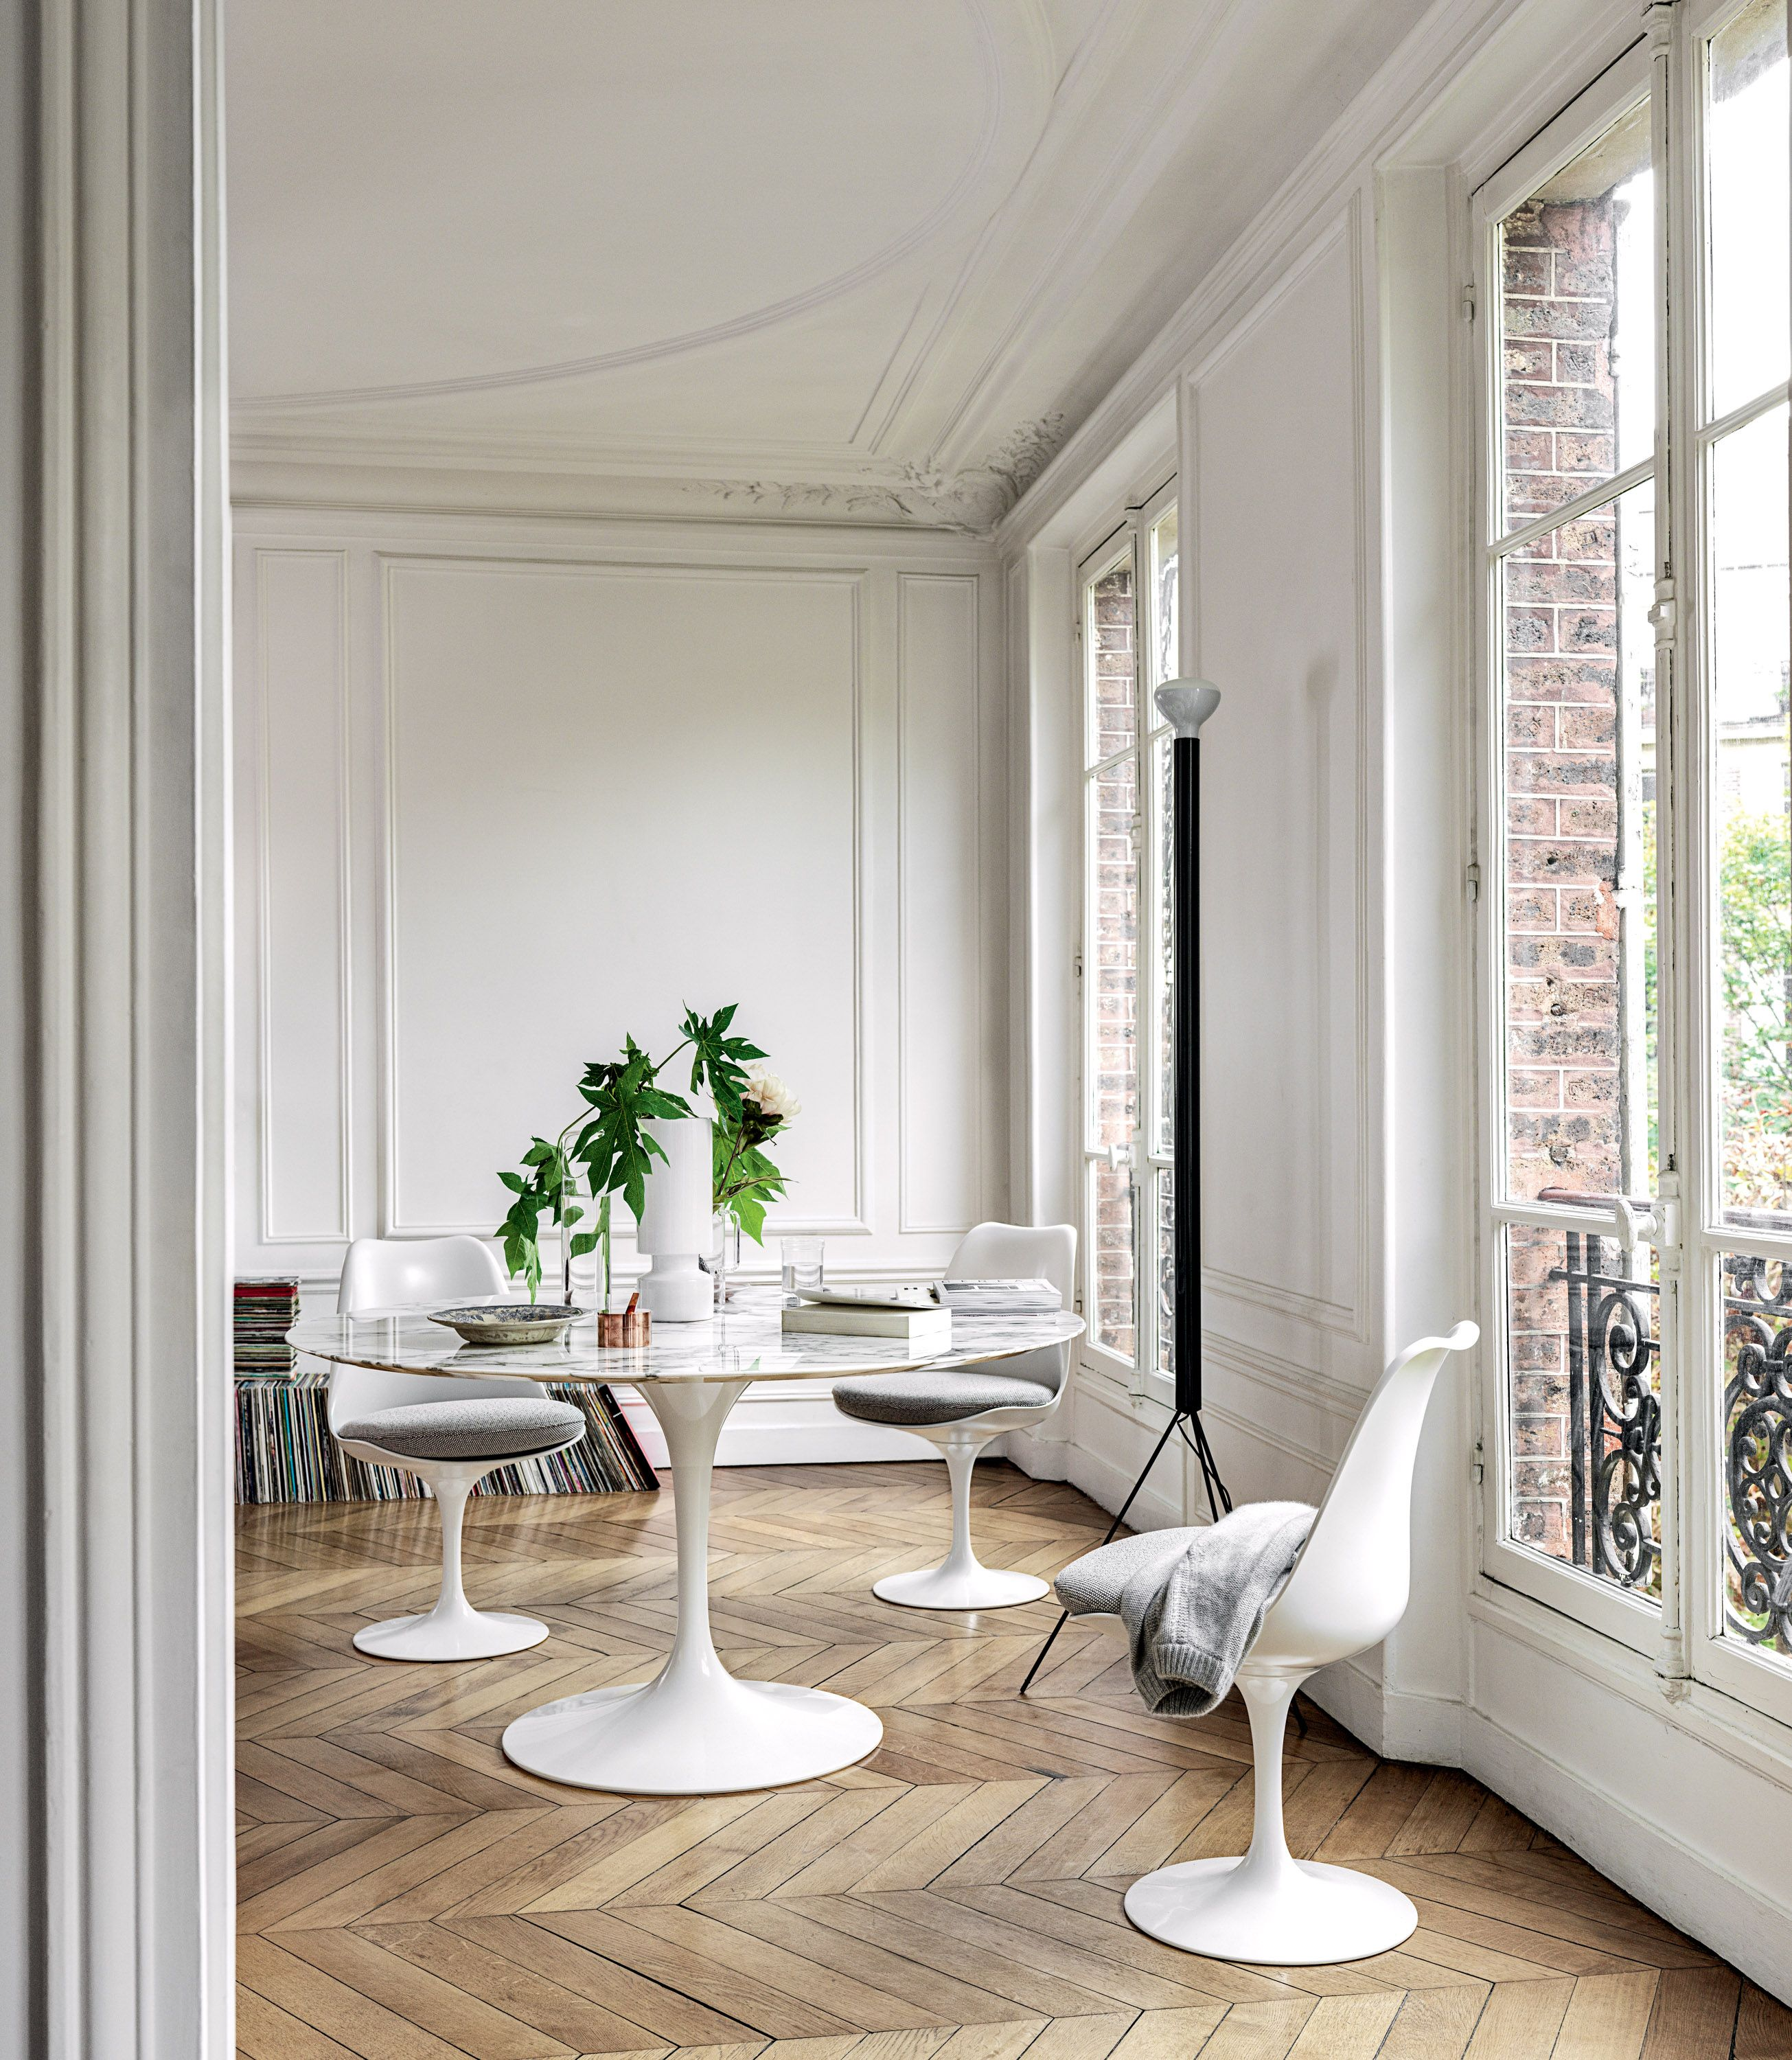 Saarinen Dining Table 47 Round In 2020 Knoll Dining Tables